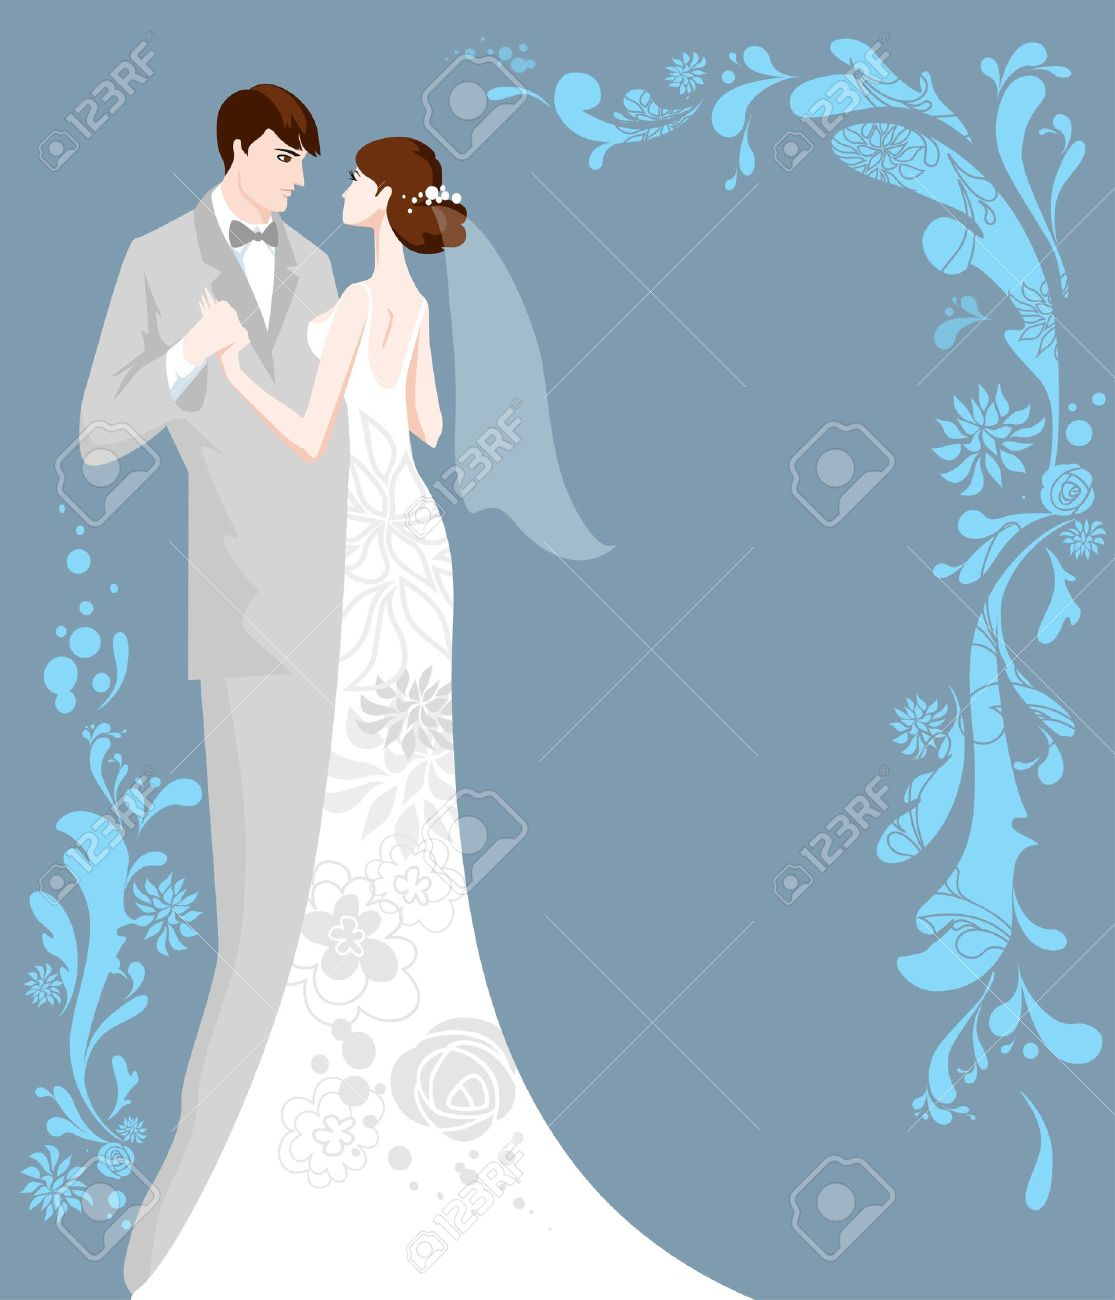 wedding background with space for text royalty free cliparts